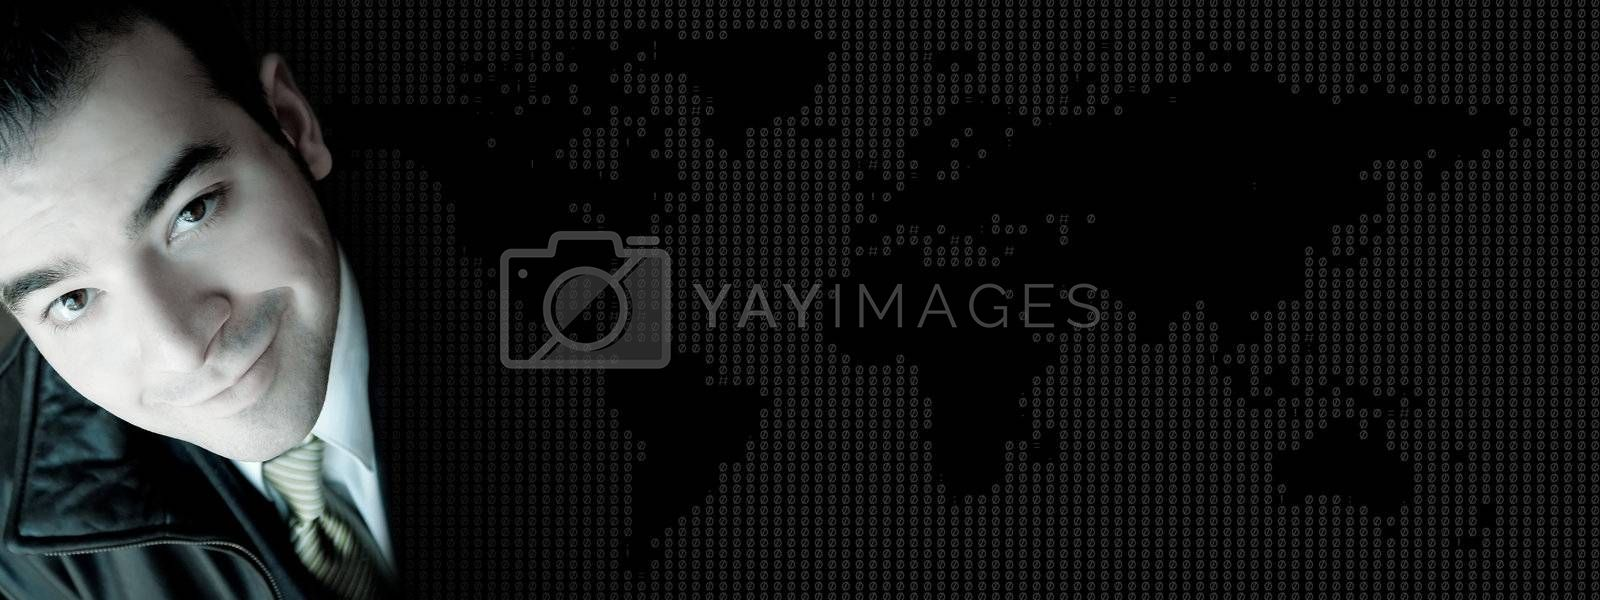 Business banner background with a smiling young business man over a world map texture.